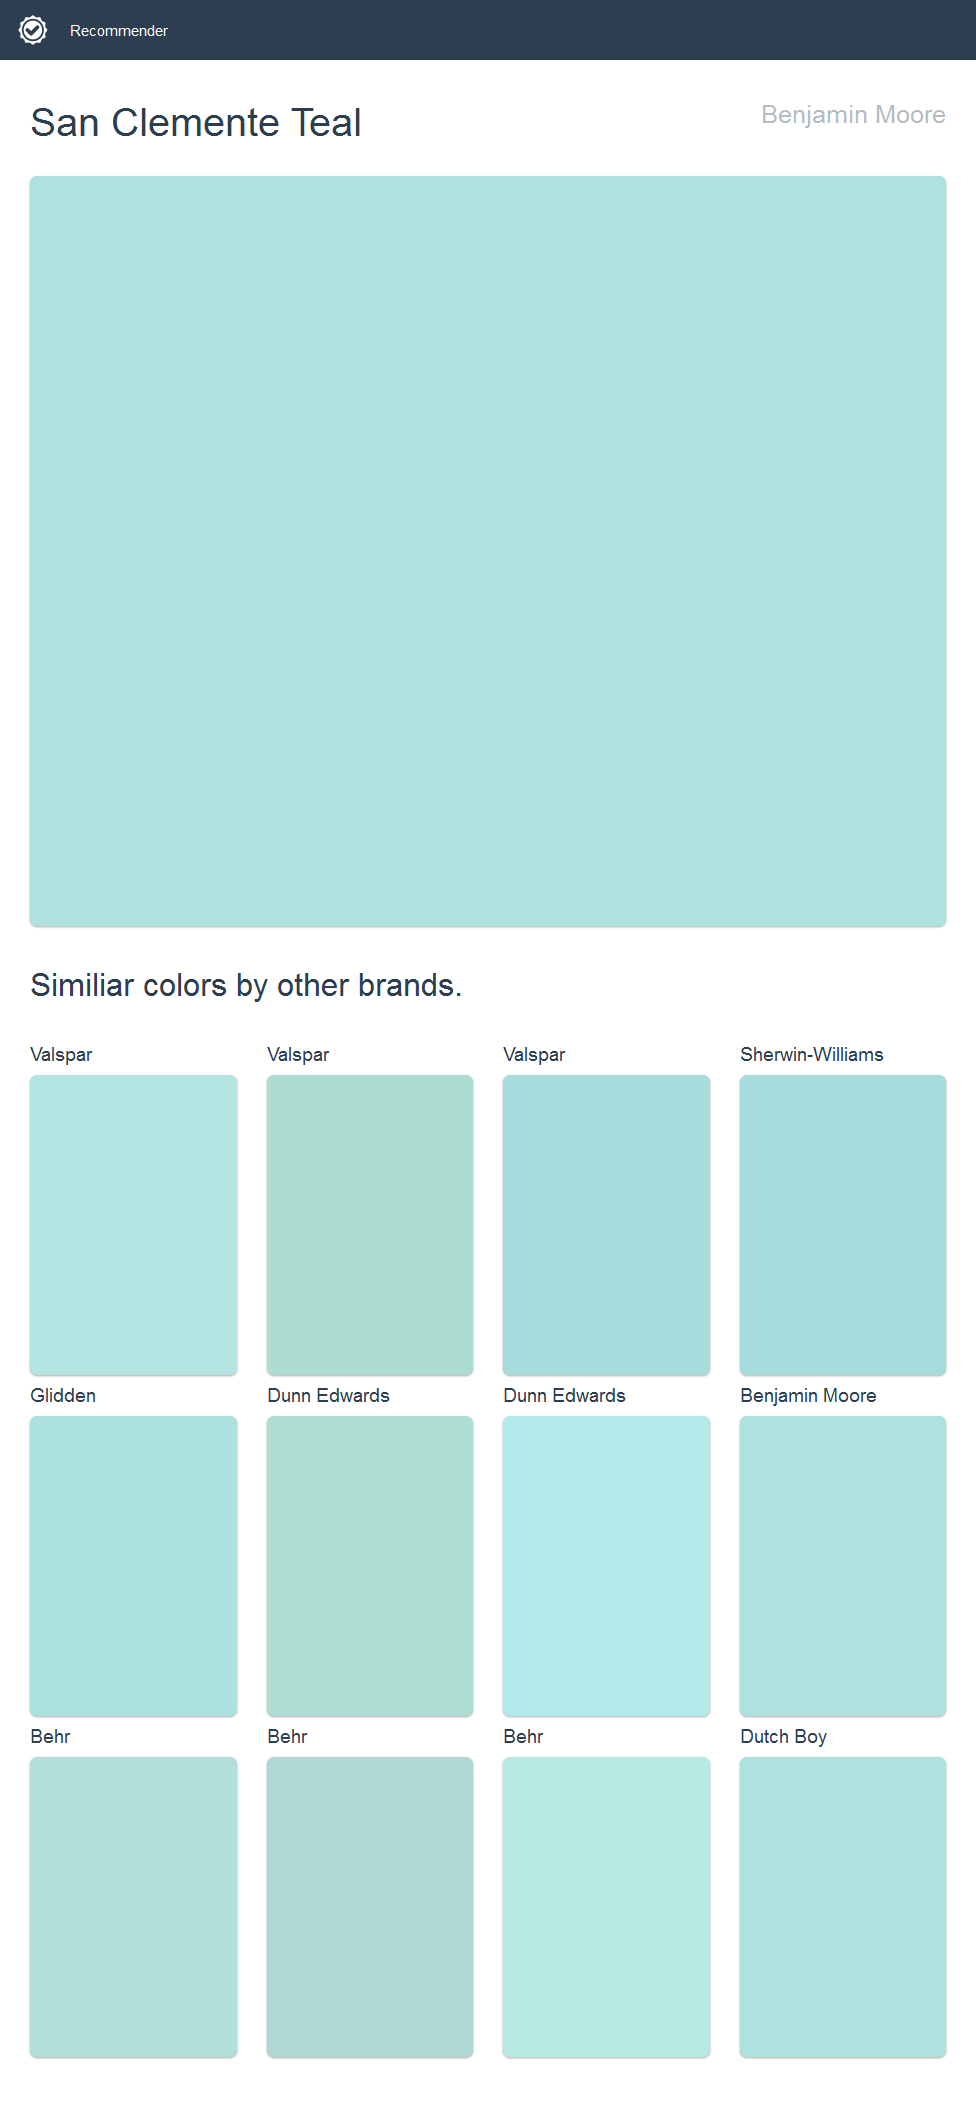 San Clemente Teal, Benjamin Moore Click The Image To See